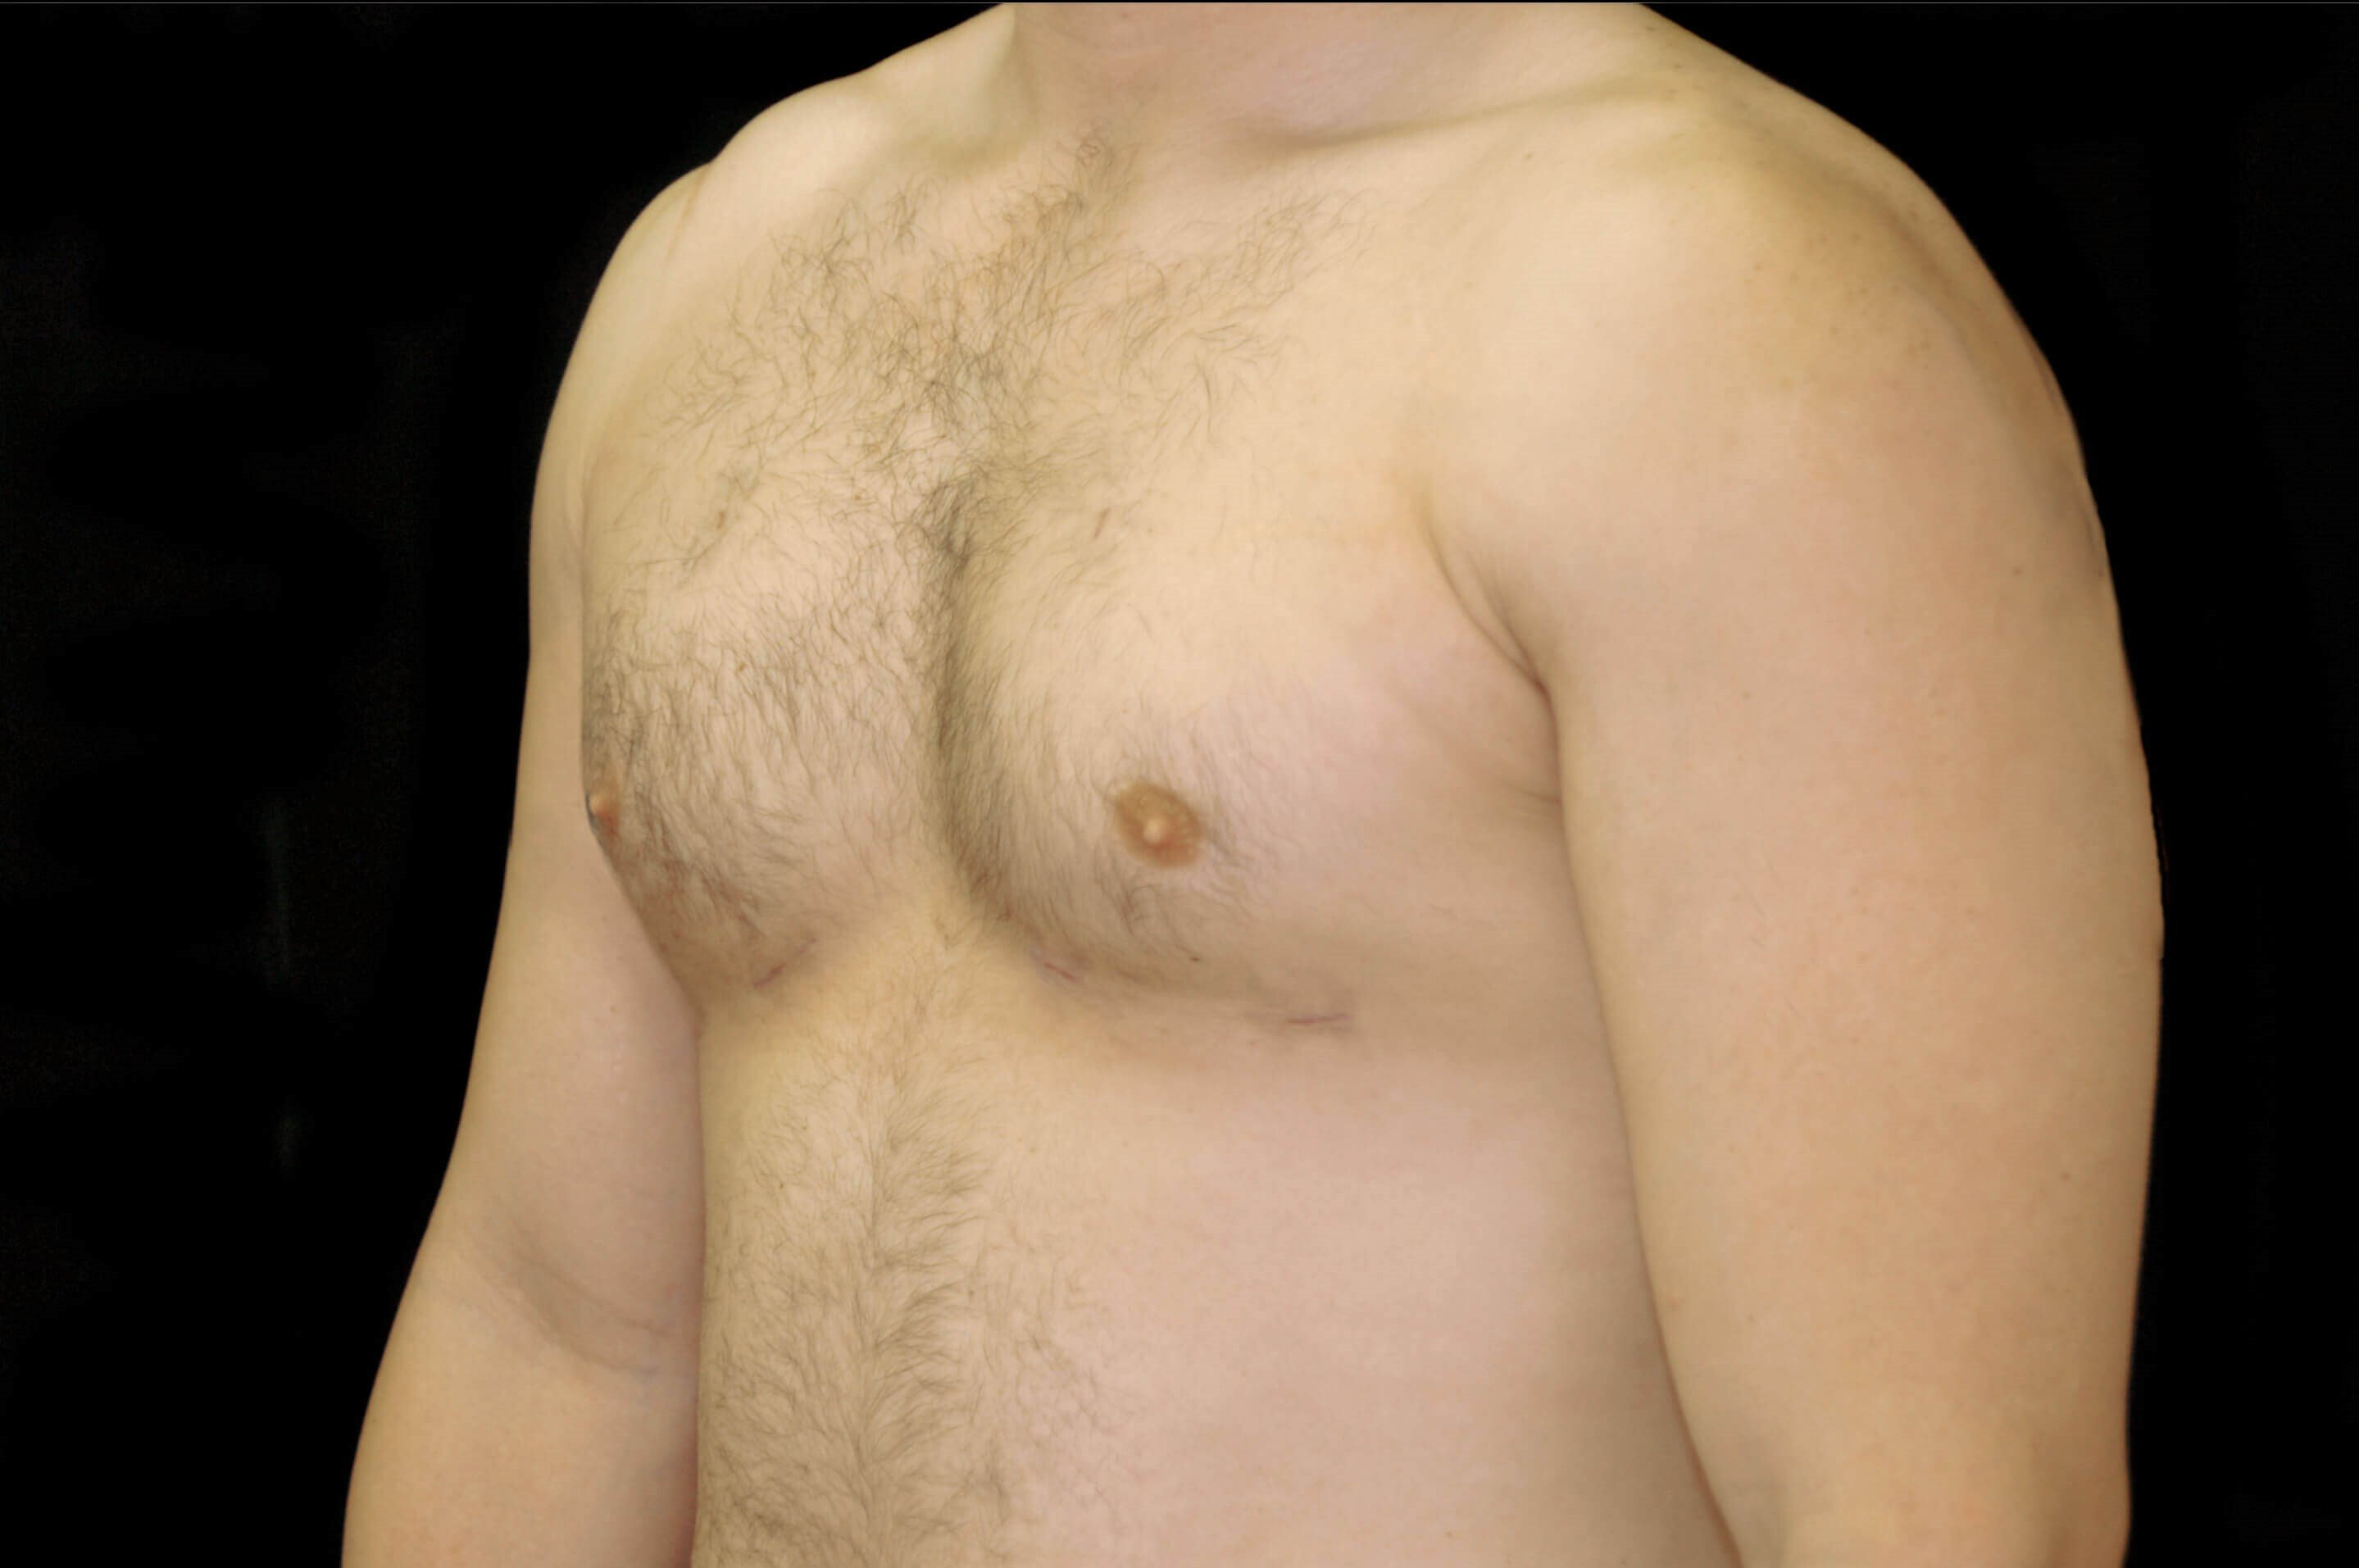 Male Gynecomastia Reduction After Chest Liposuction